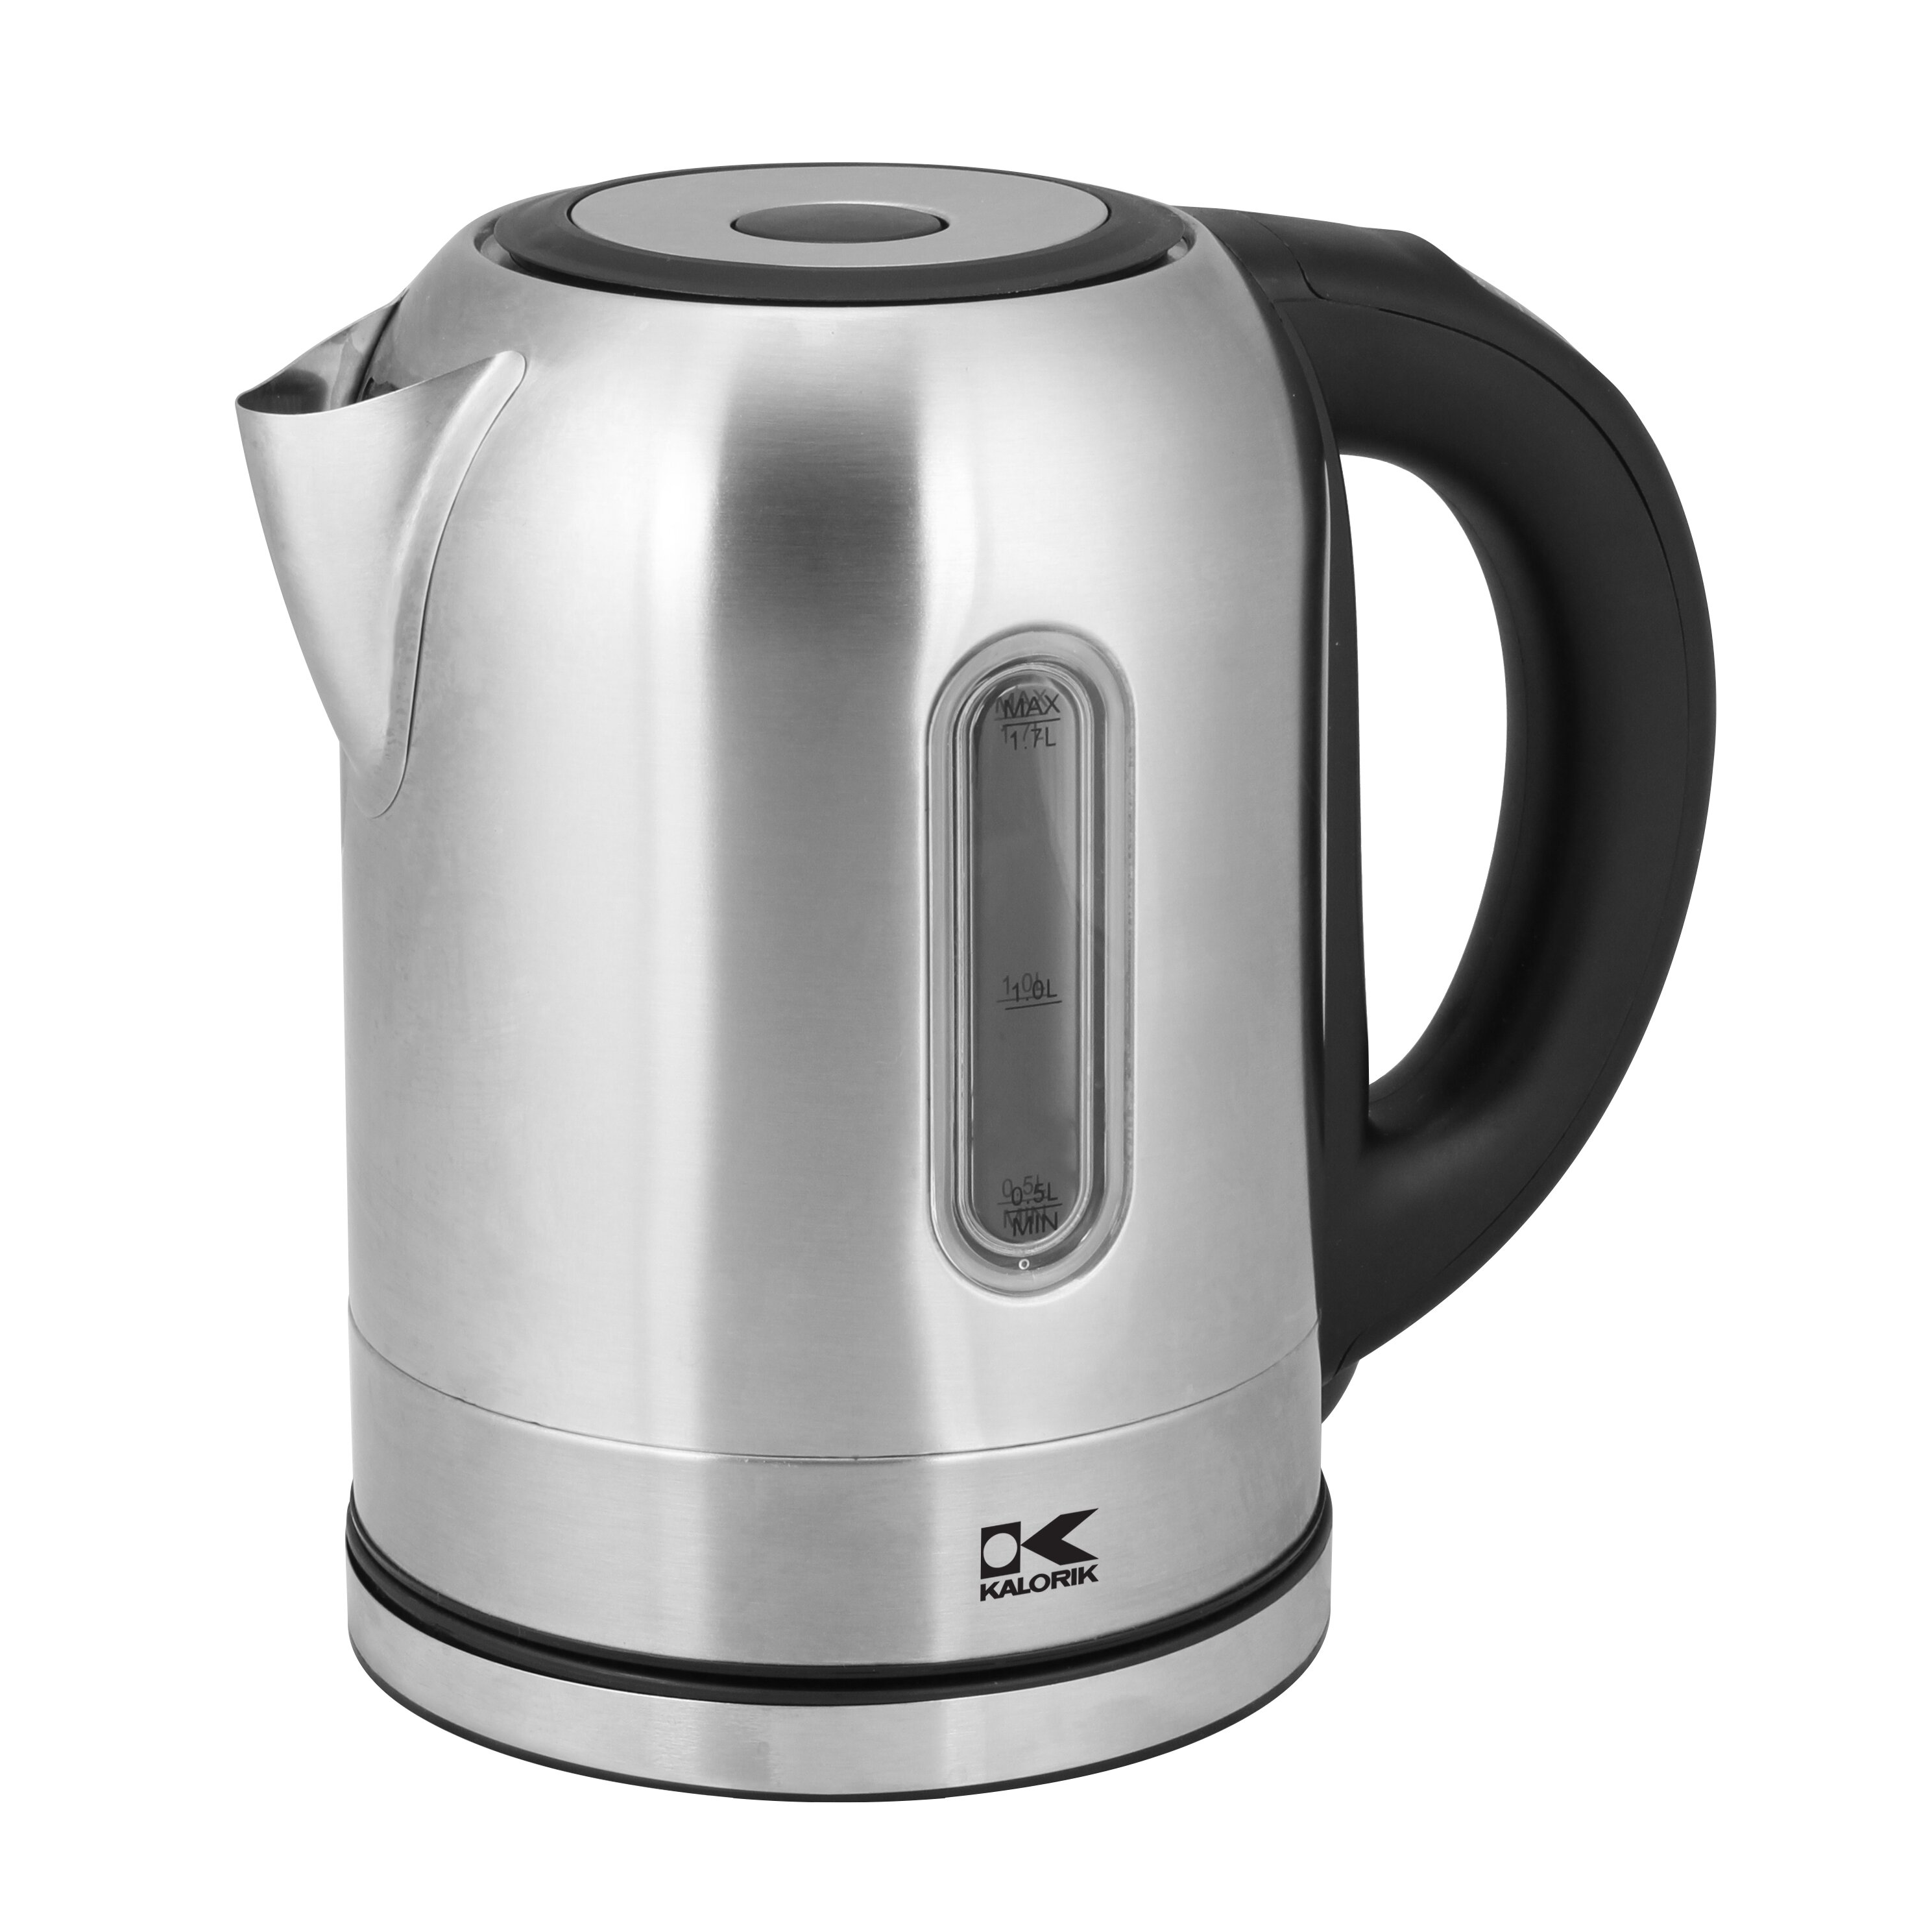 Stainless Electric Kettle ~ Kalorik qt stainless steel electric tea kettle in